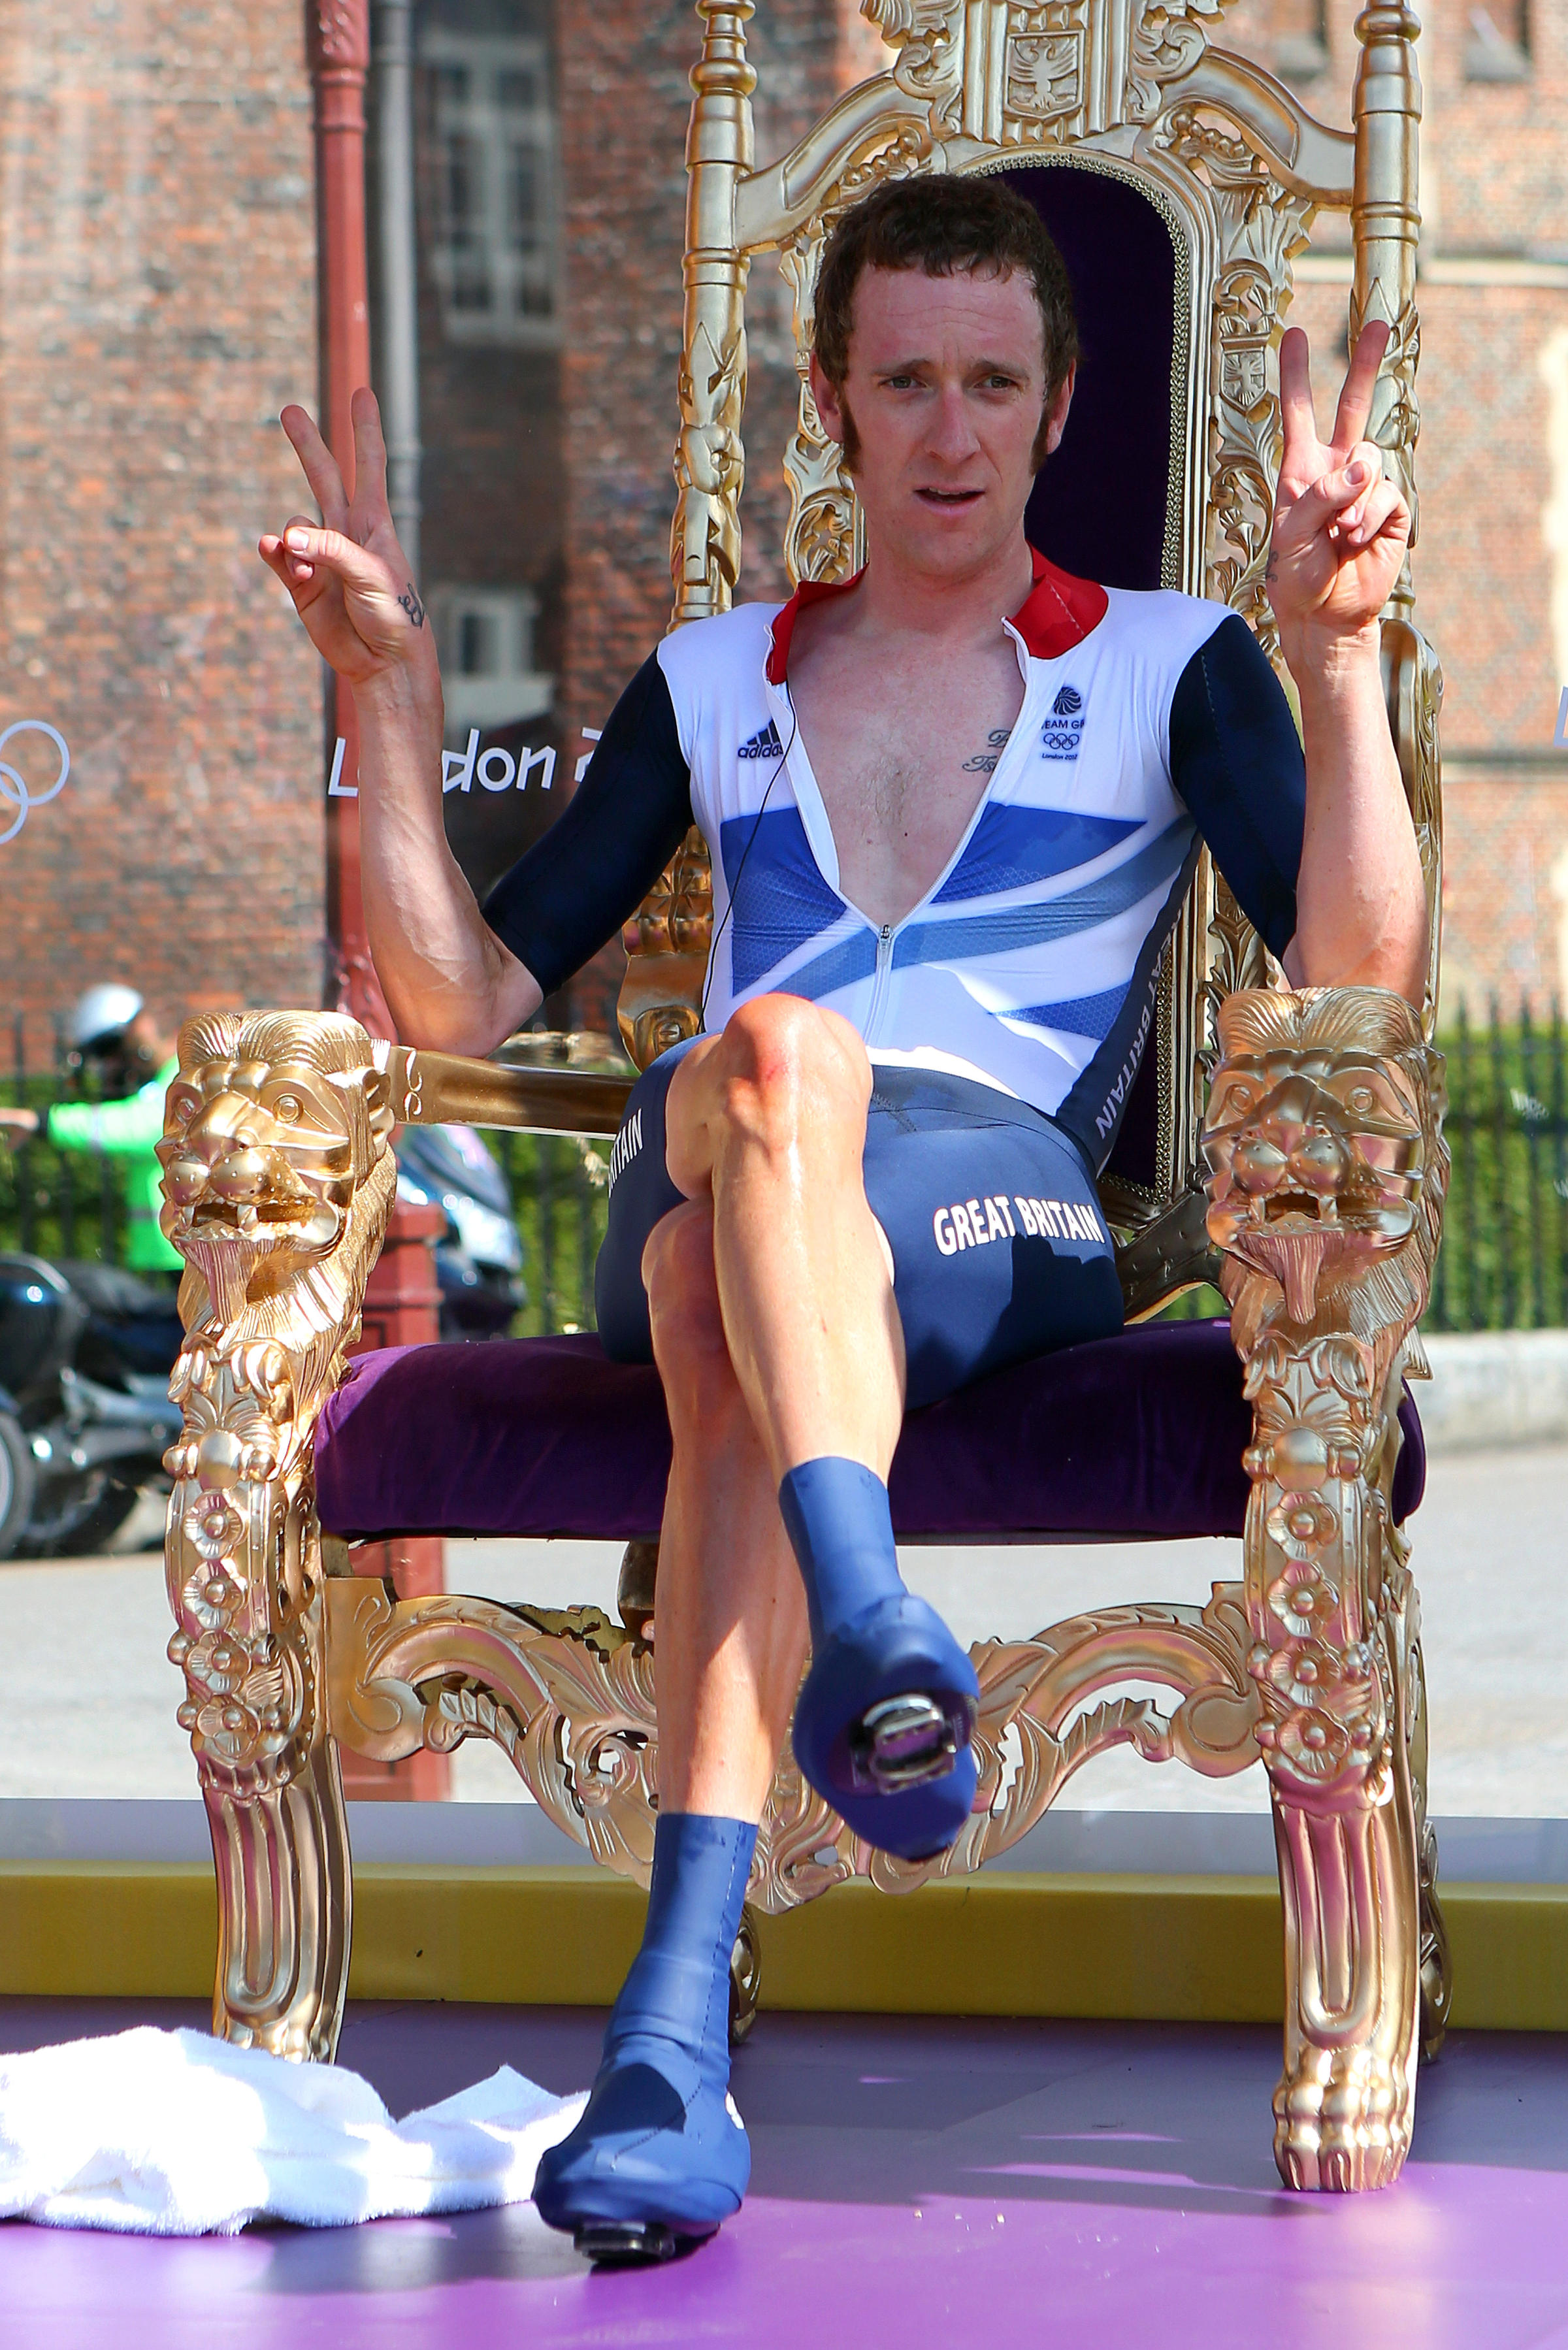 Wiggin' Out: Bradley Wiggins Drinks To His Gold Medal, And The Mods